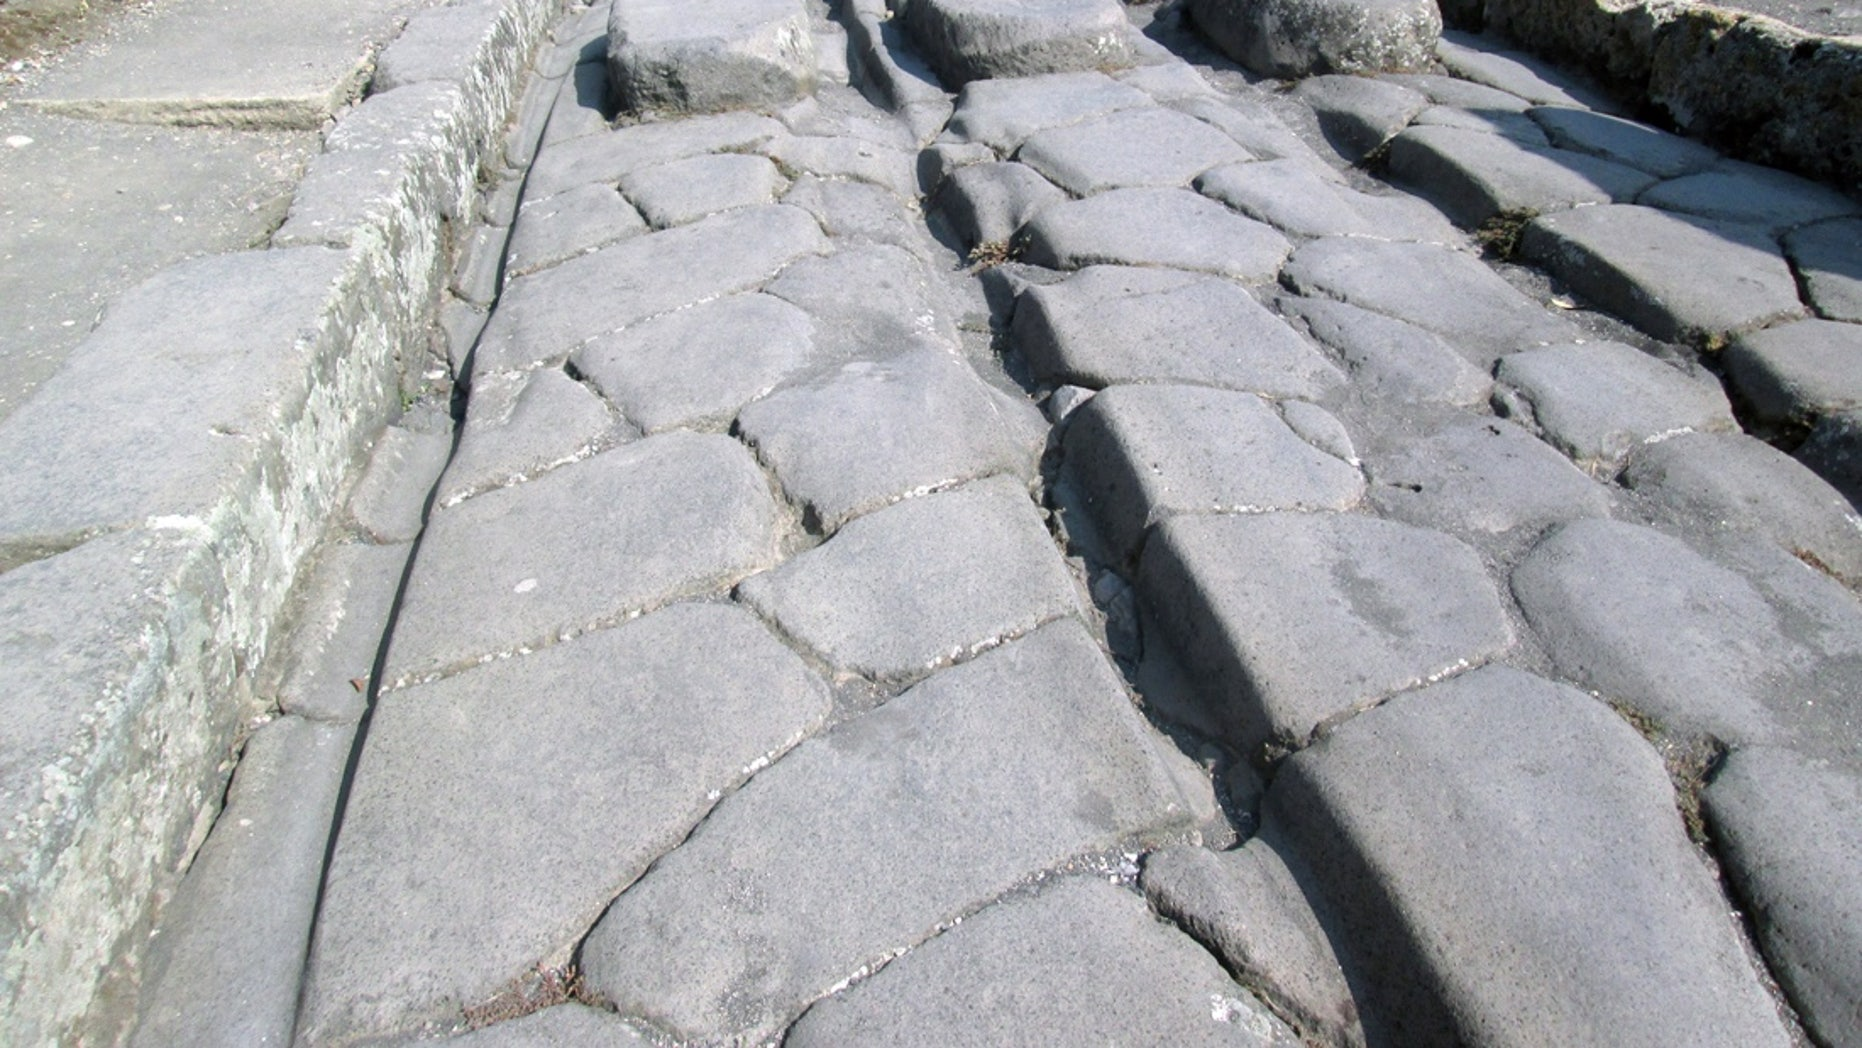 The thoroughfare of carts over decades could means ruts (like a one shown here), quite in jammed areas of Pompeii.